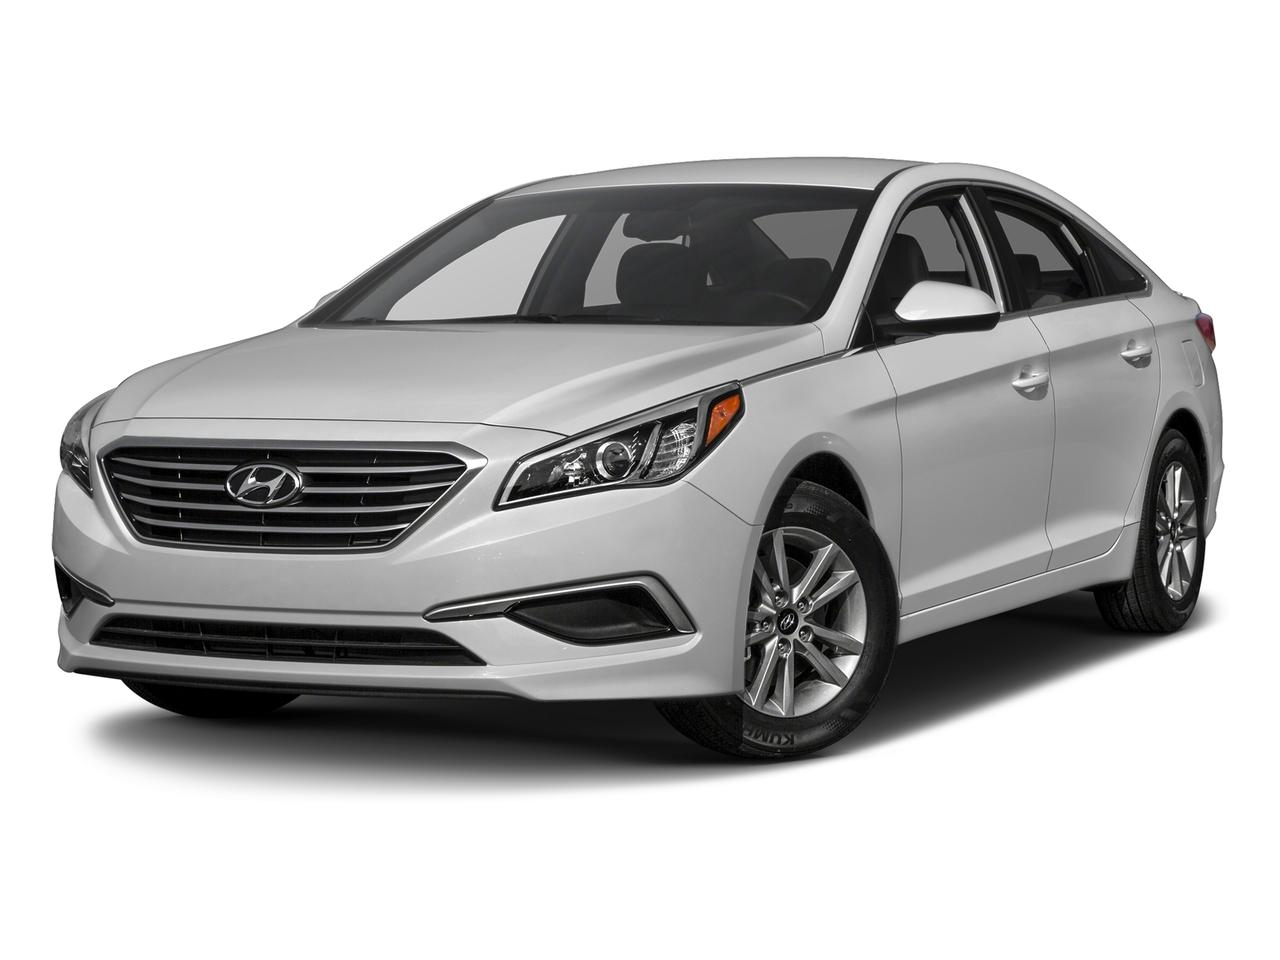 2017 Hyundai Sonata Vehicle Photo in Pocomoke City, MD 21851